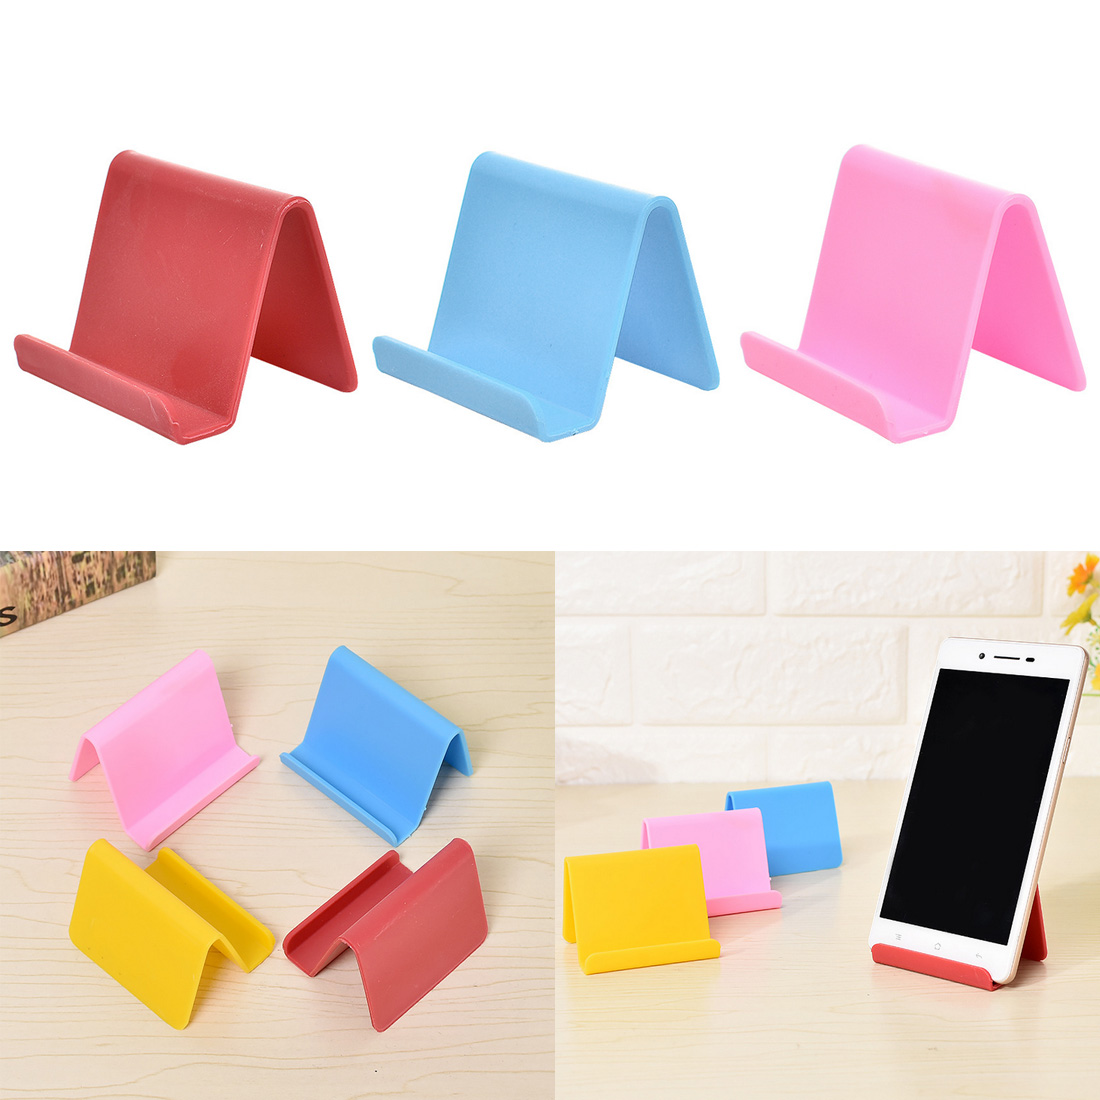 Plastic Phone Holder Fixed Holder Candy Color Kitchen Organizer Mini Portable Business Card Holder Mobile Phone Stand Household